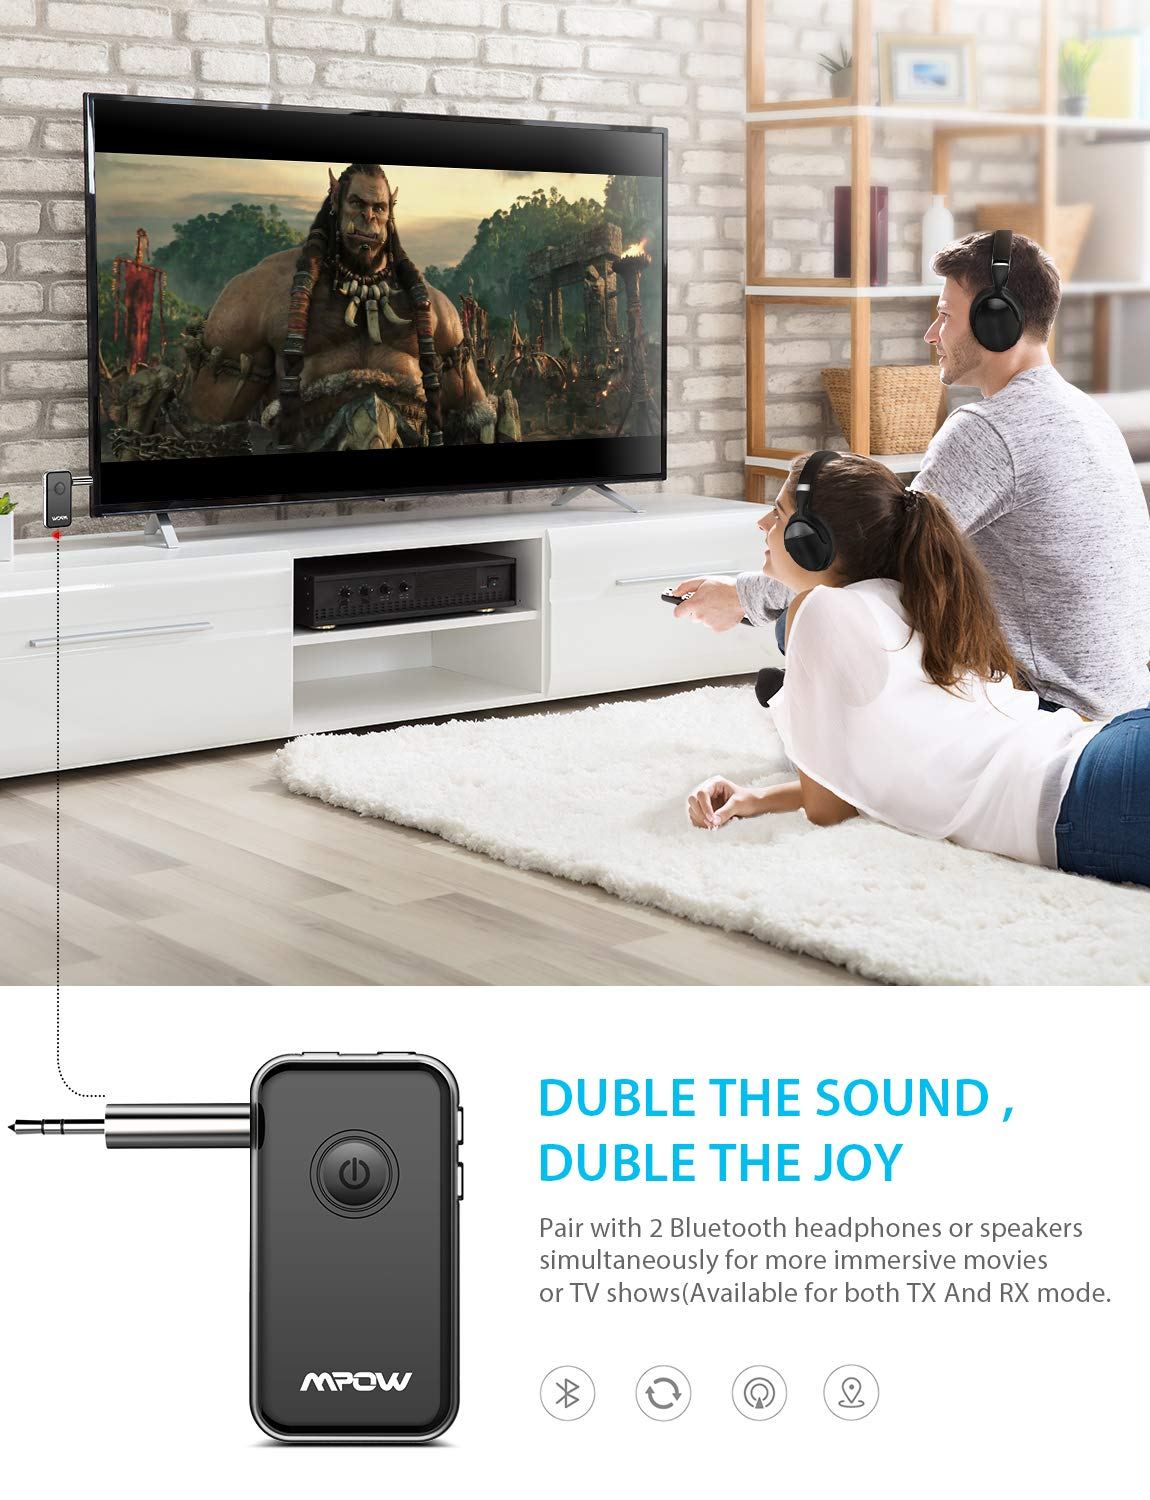 Amazon.com: Mpow Upgraded APTX Bluetooth Adapter for CD Like Music, aptX-LL Bluetooth Transmitter for TV to Pair with 2 Bluetooth Headphones, ...